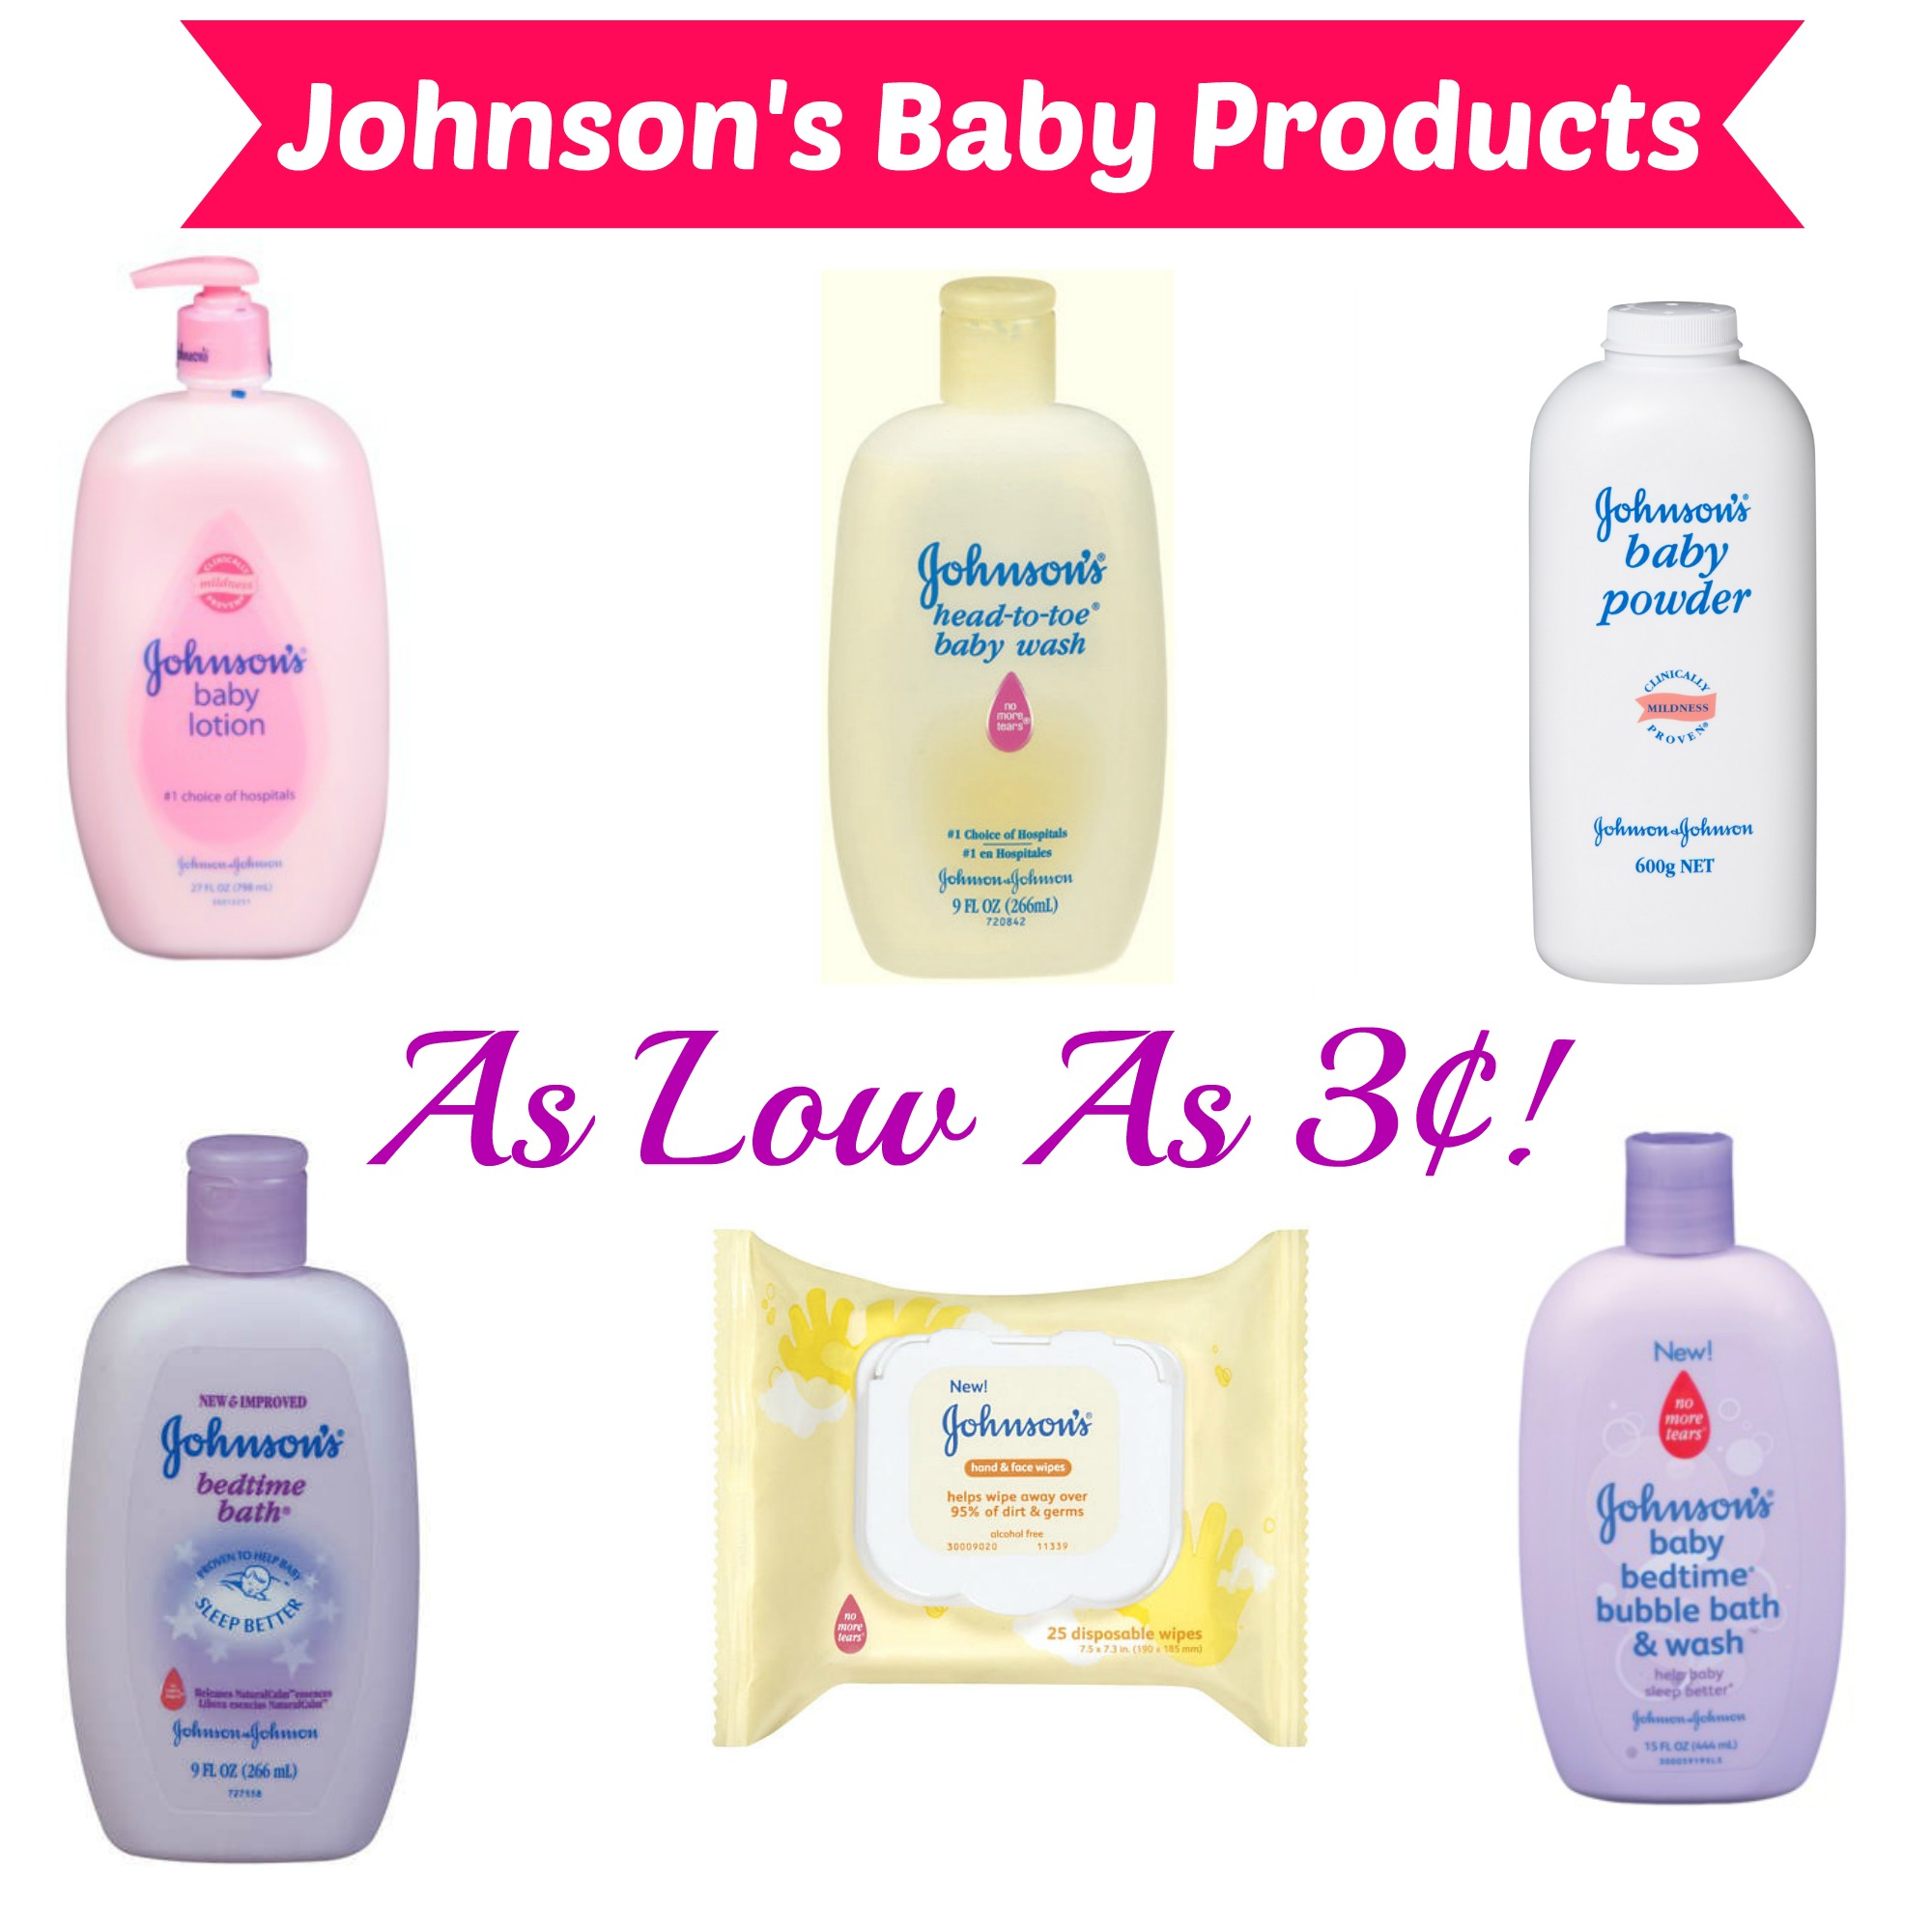 Shop our top deals for Baby. Check out our current deal before it's gone. Updated regularly with great products from Baby Depot.